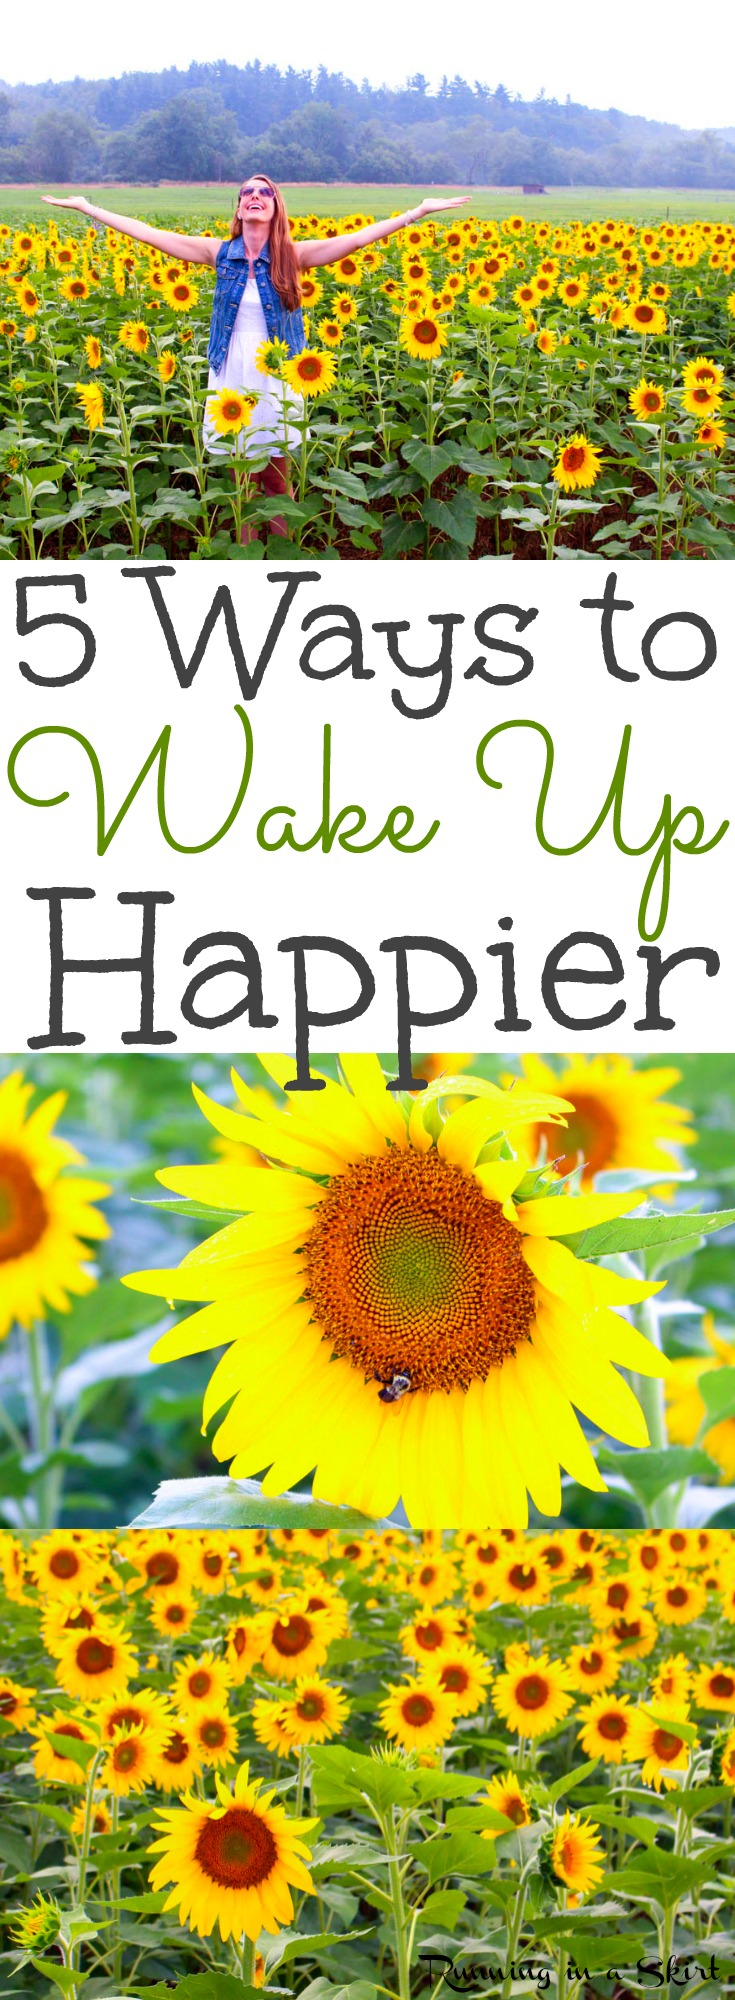 5 Ways to Wake Up Happier- a healthy wake up routine and tips to get the most out of your morning and feel good. Simple motivation and inspiration to actually feel positive in the mornings. / Running in a Skirt via @juliewunder